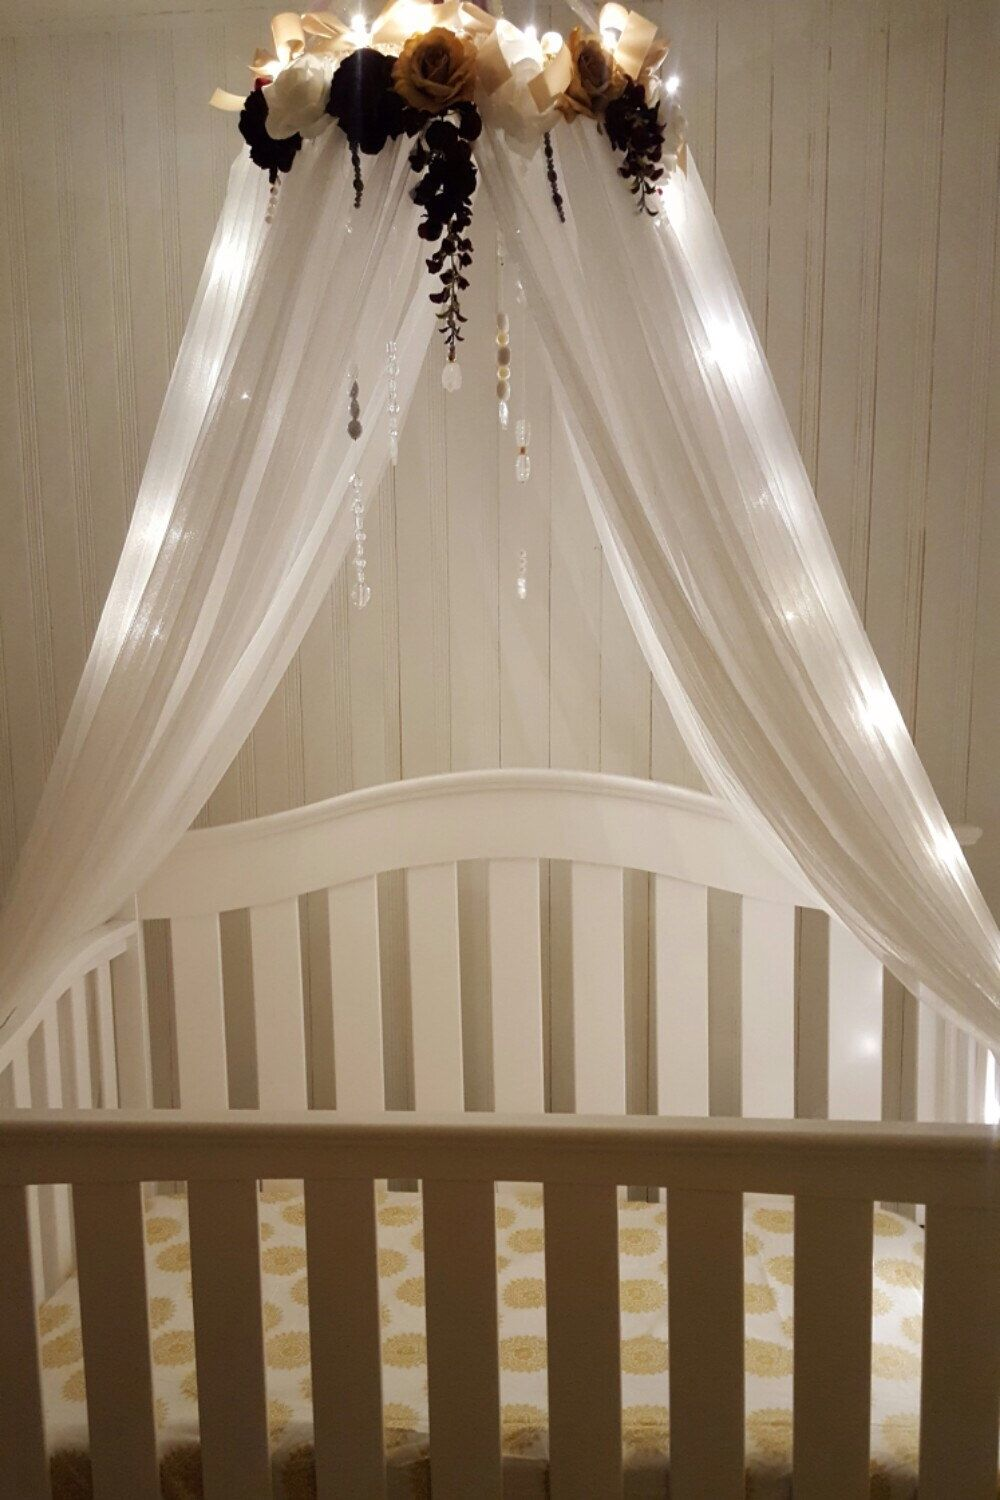 Ivory Ch&agne u0026 Plum Canopy- Nursery Crib Canopy- Bed Canopy- Crib Canopy- Flower Canopy- Lighted Canopy- Baby girl : canopies for cribs - memphite.com